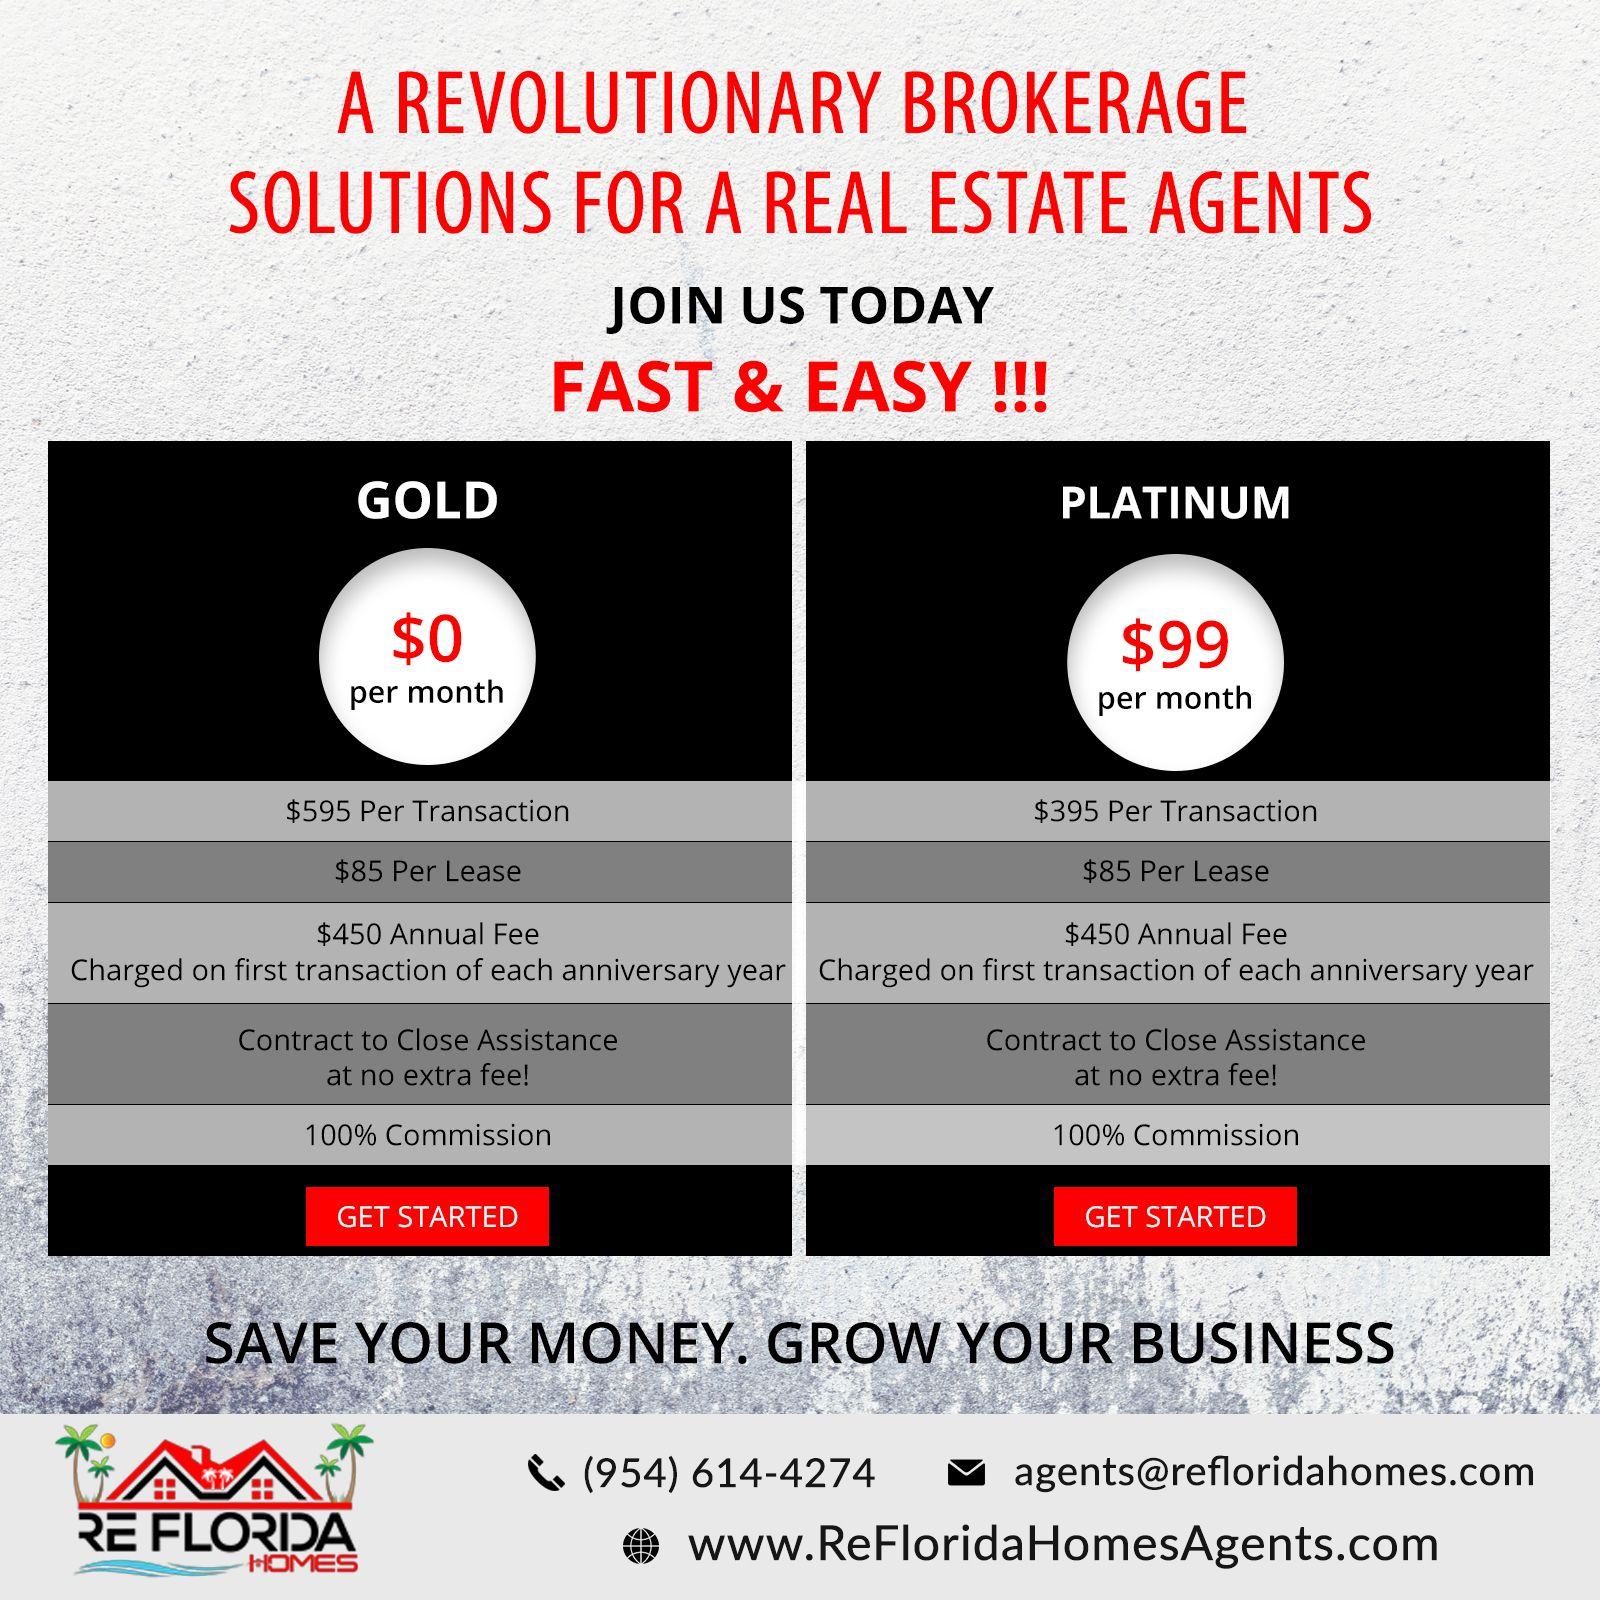 We Are Looking For New Agents To Join Our Team Prepare To Take